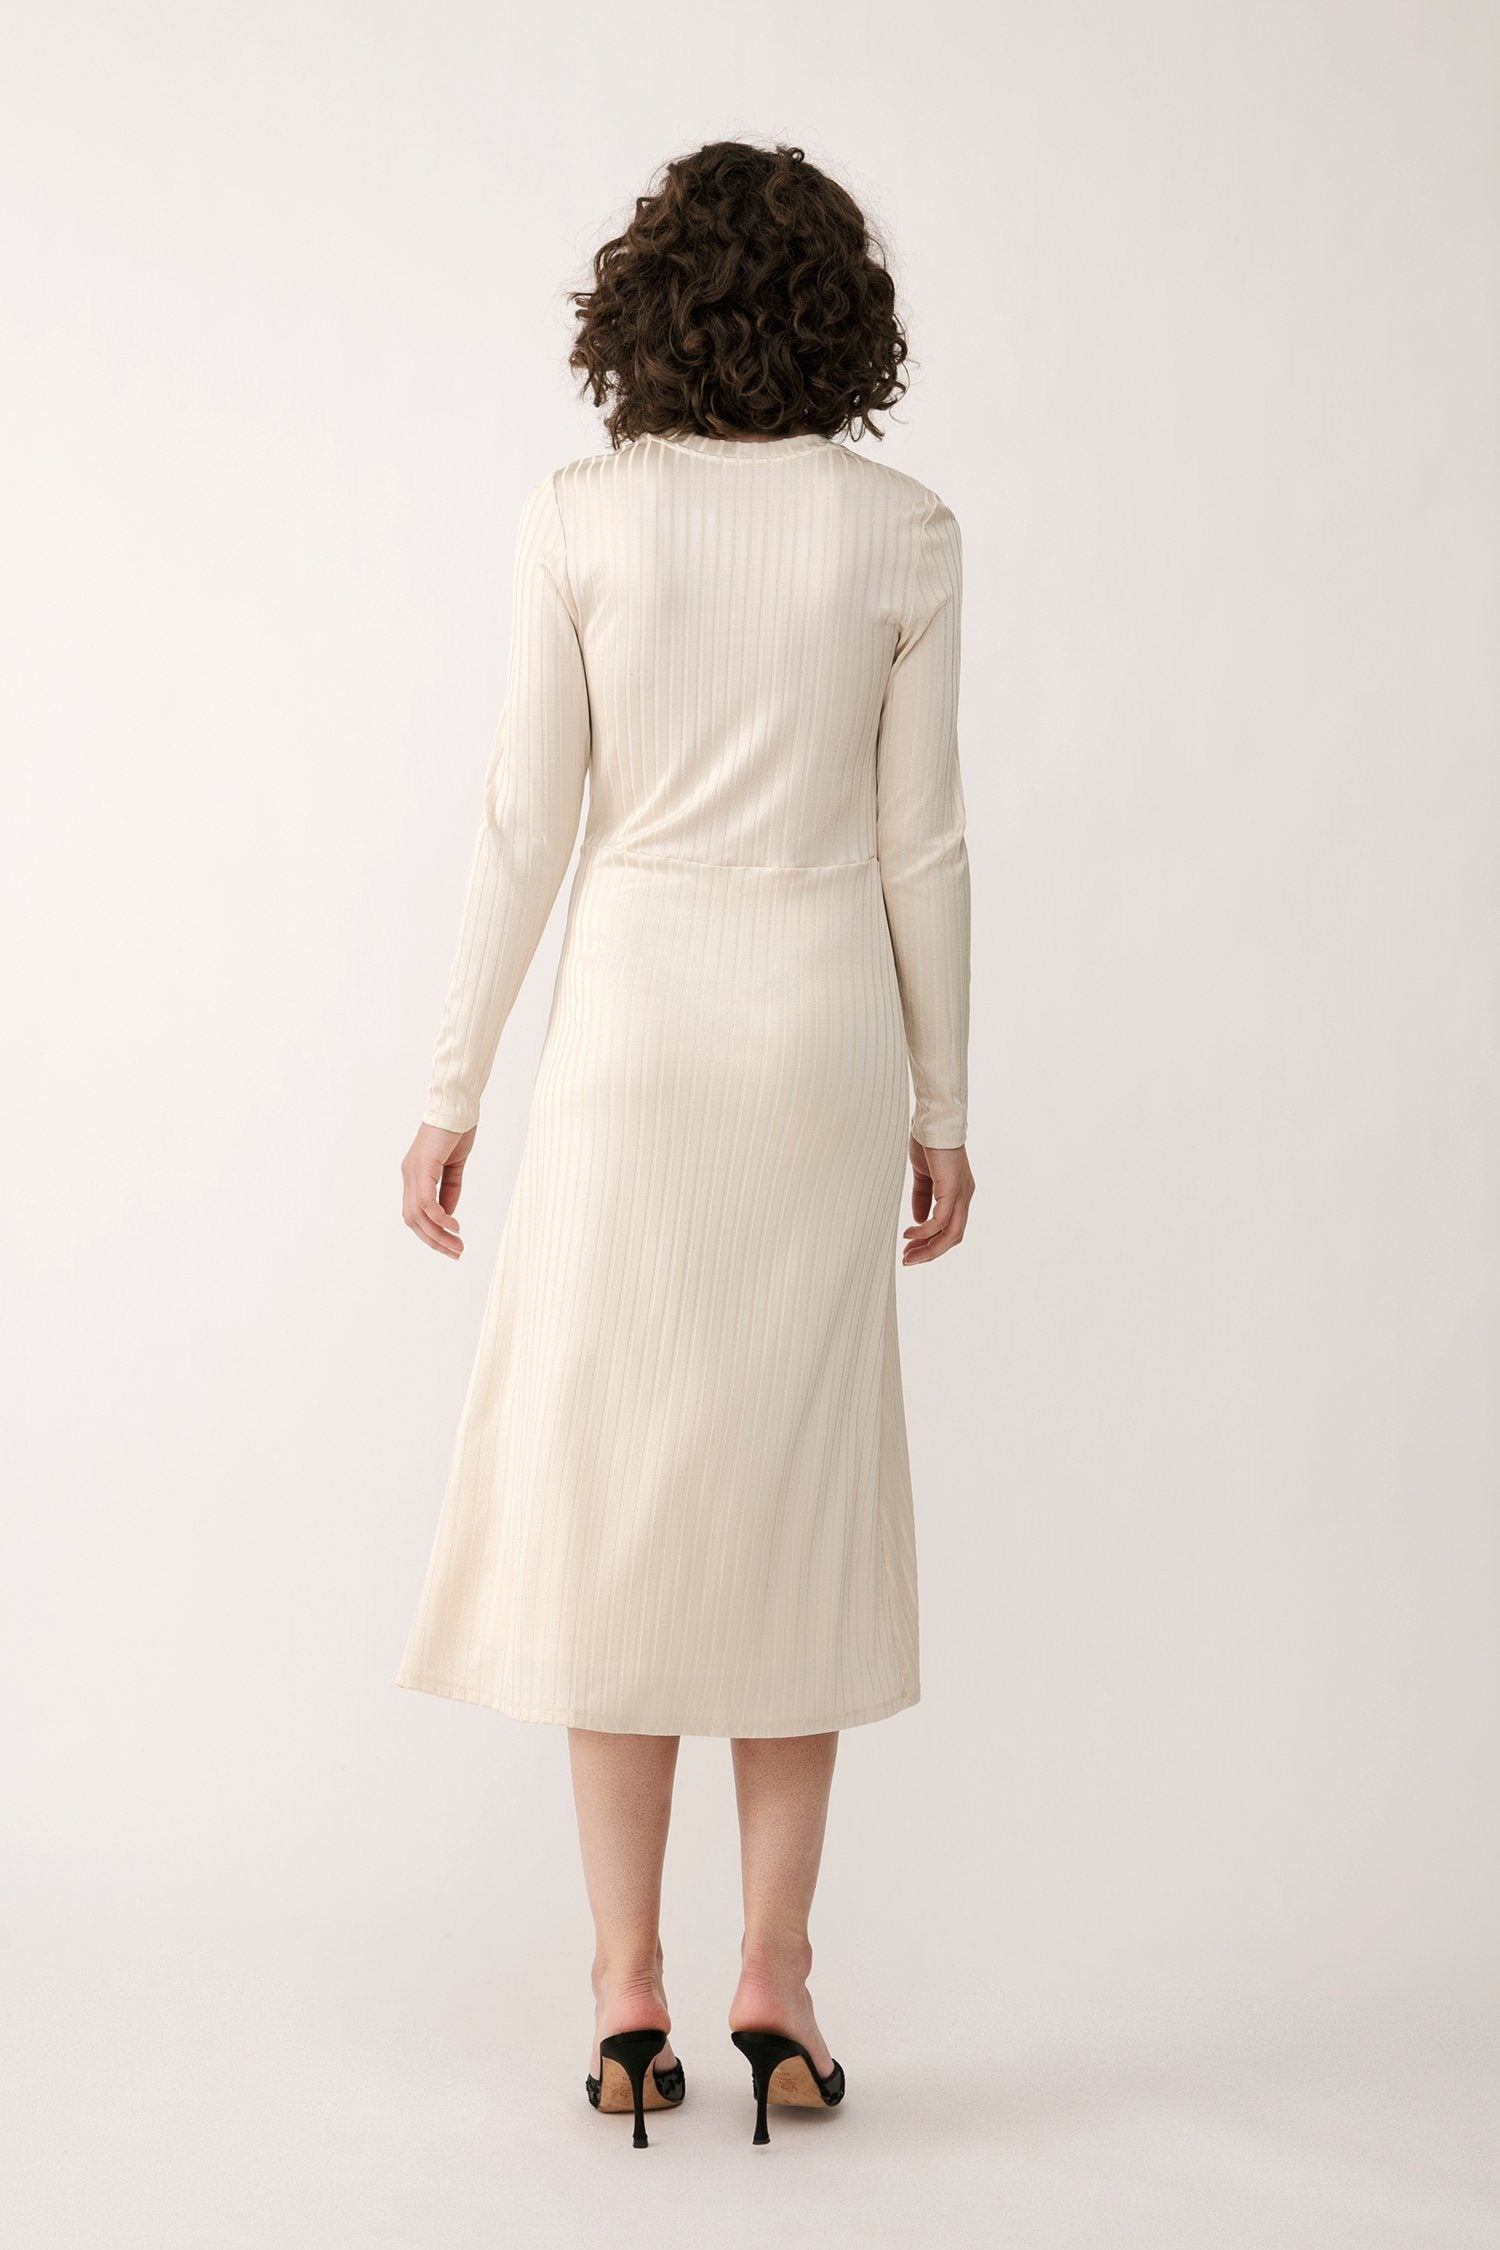 PALAZZO DRESS - CREAM Dress Stylein